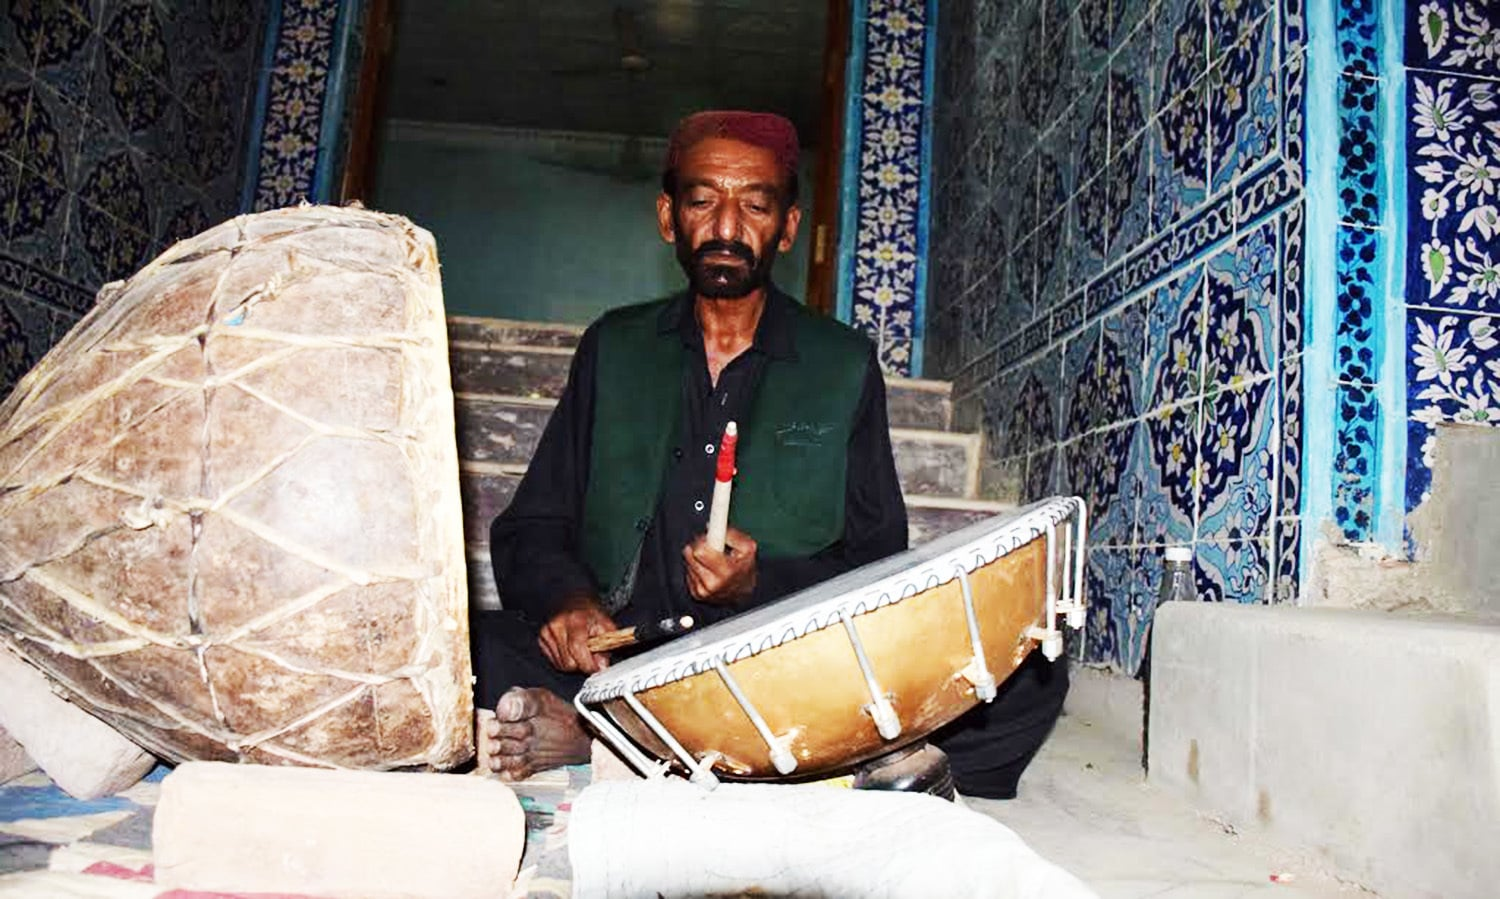 Dhamal starts when a 50 something Dargaee Faqir, beats the drums, kept in opposite direction, with alacrity after sunset.